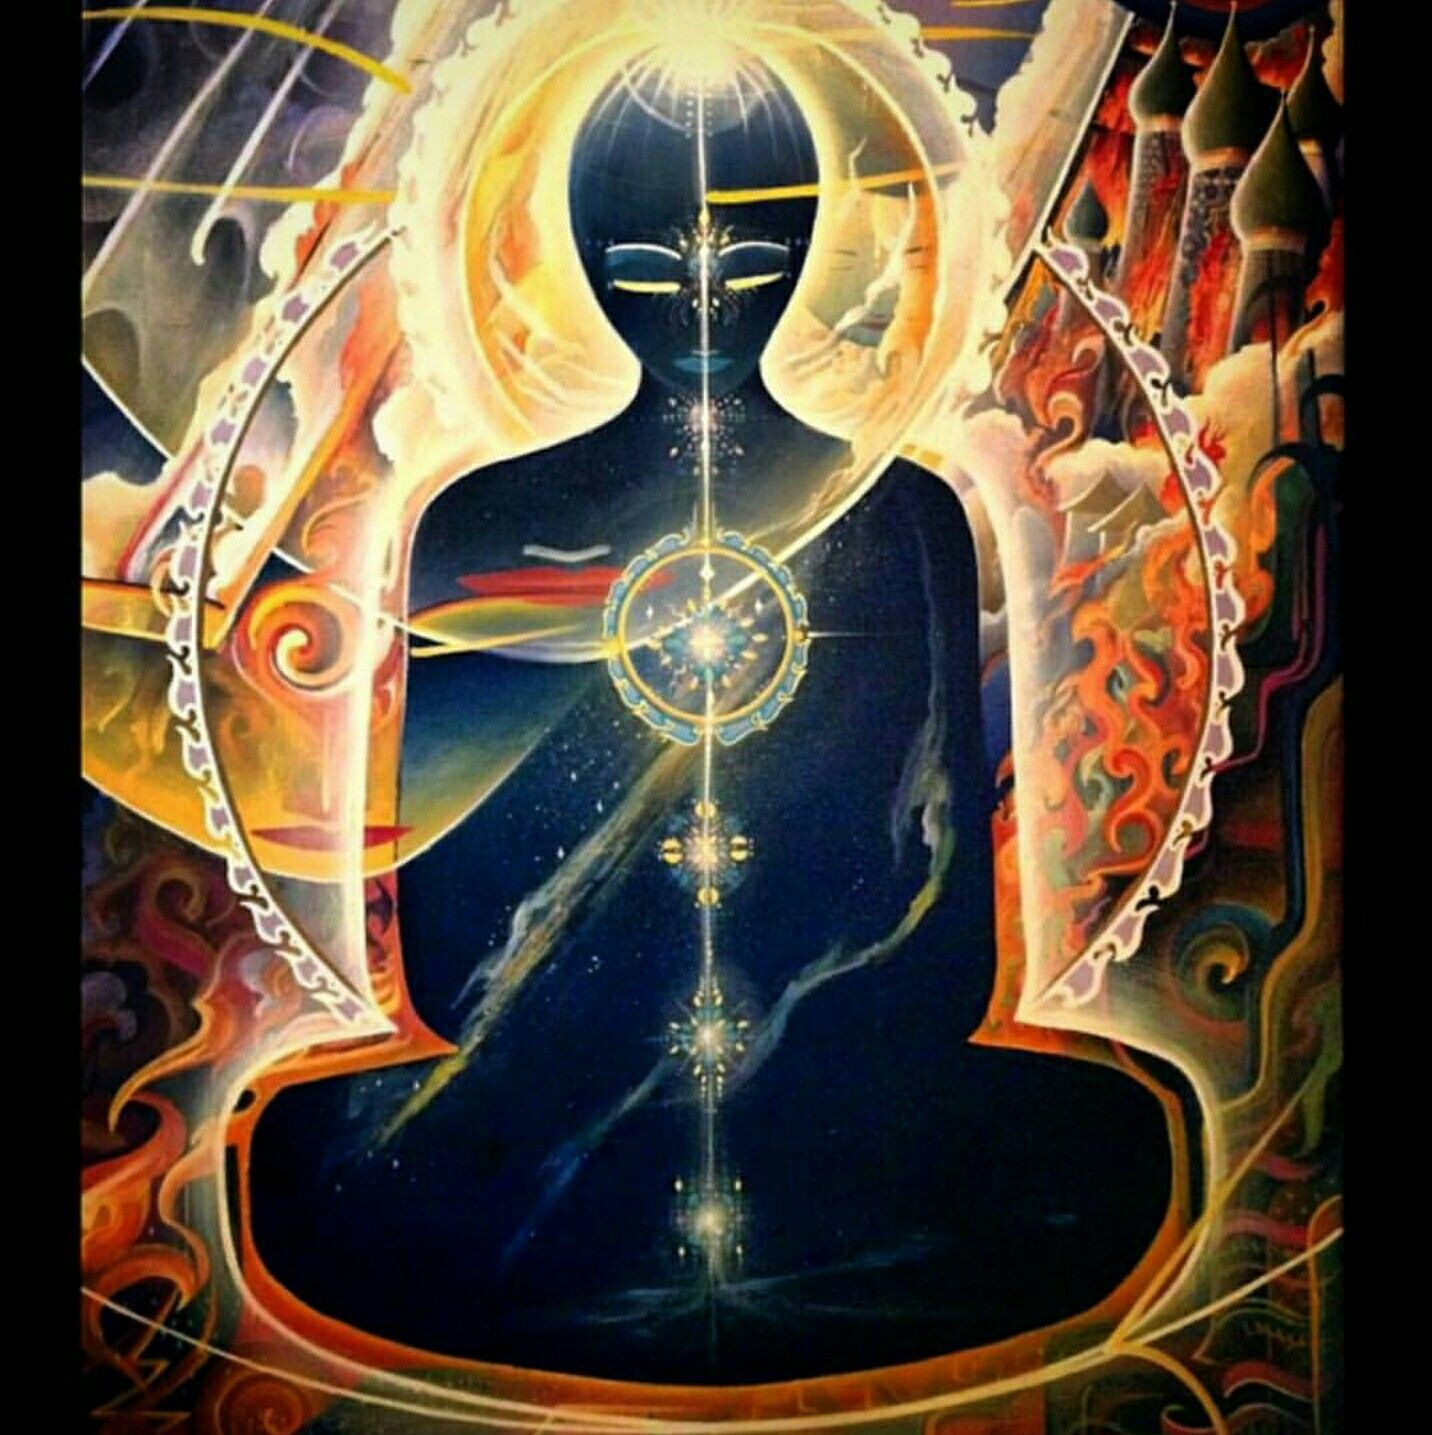 Pin by Tron on art (With images) Visionary art, Painting